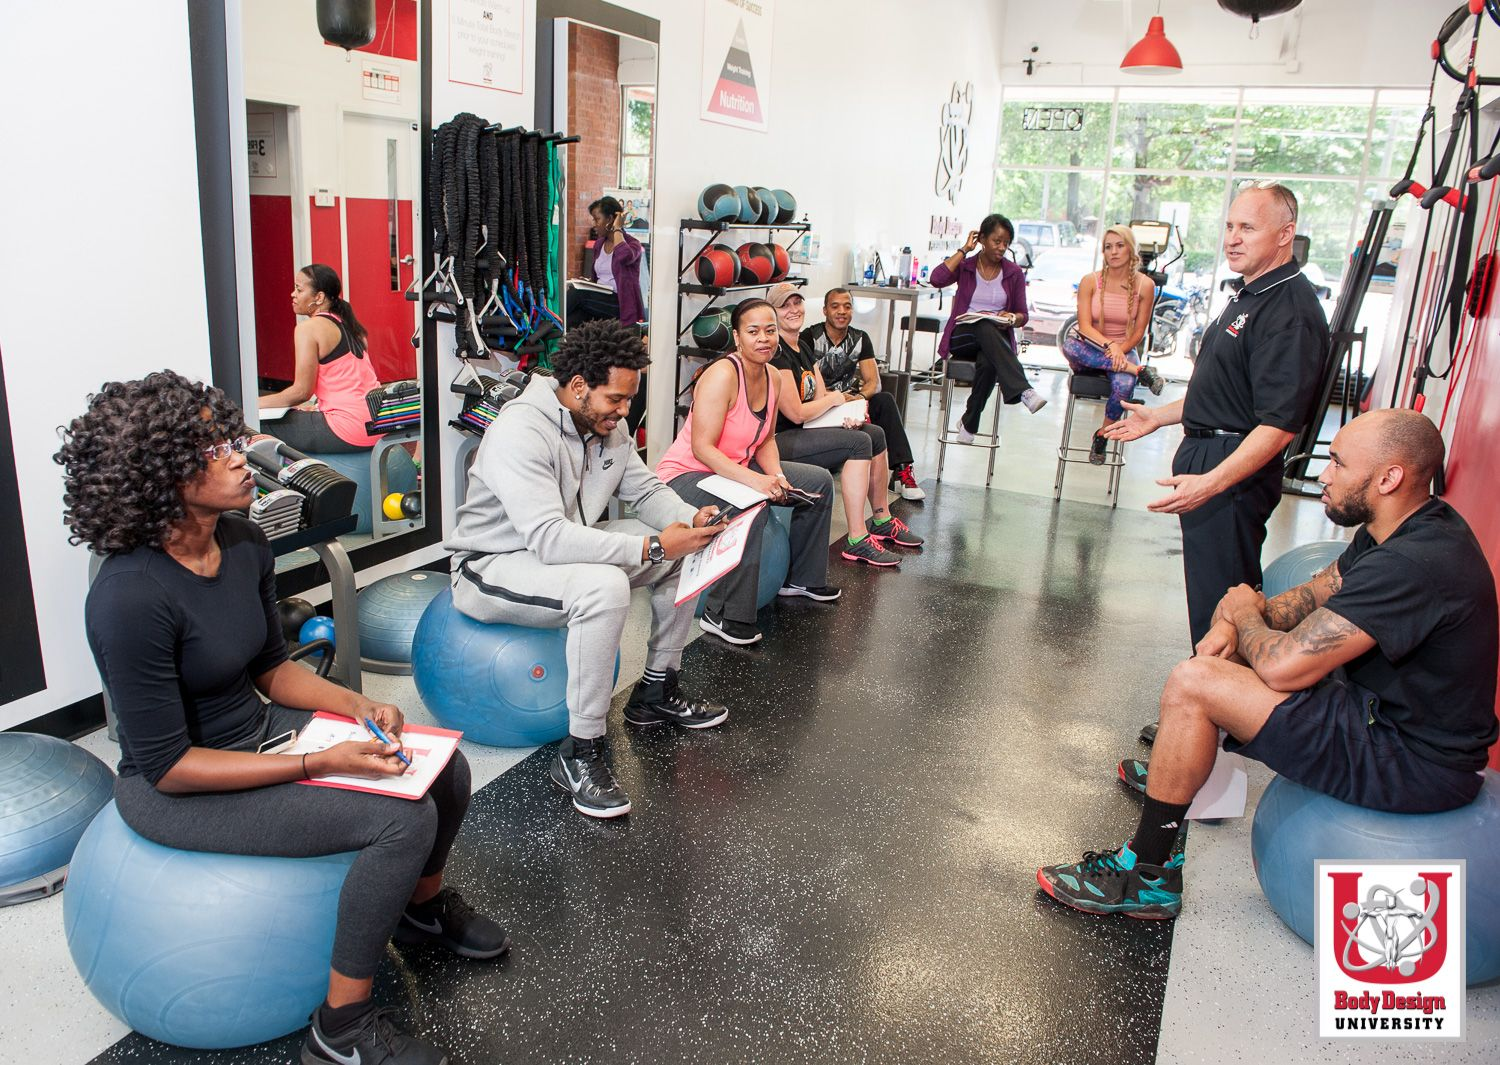 Next Month Personal Training Course Get A Nationally Recognized